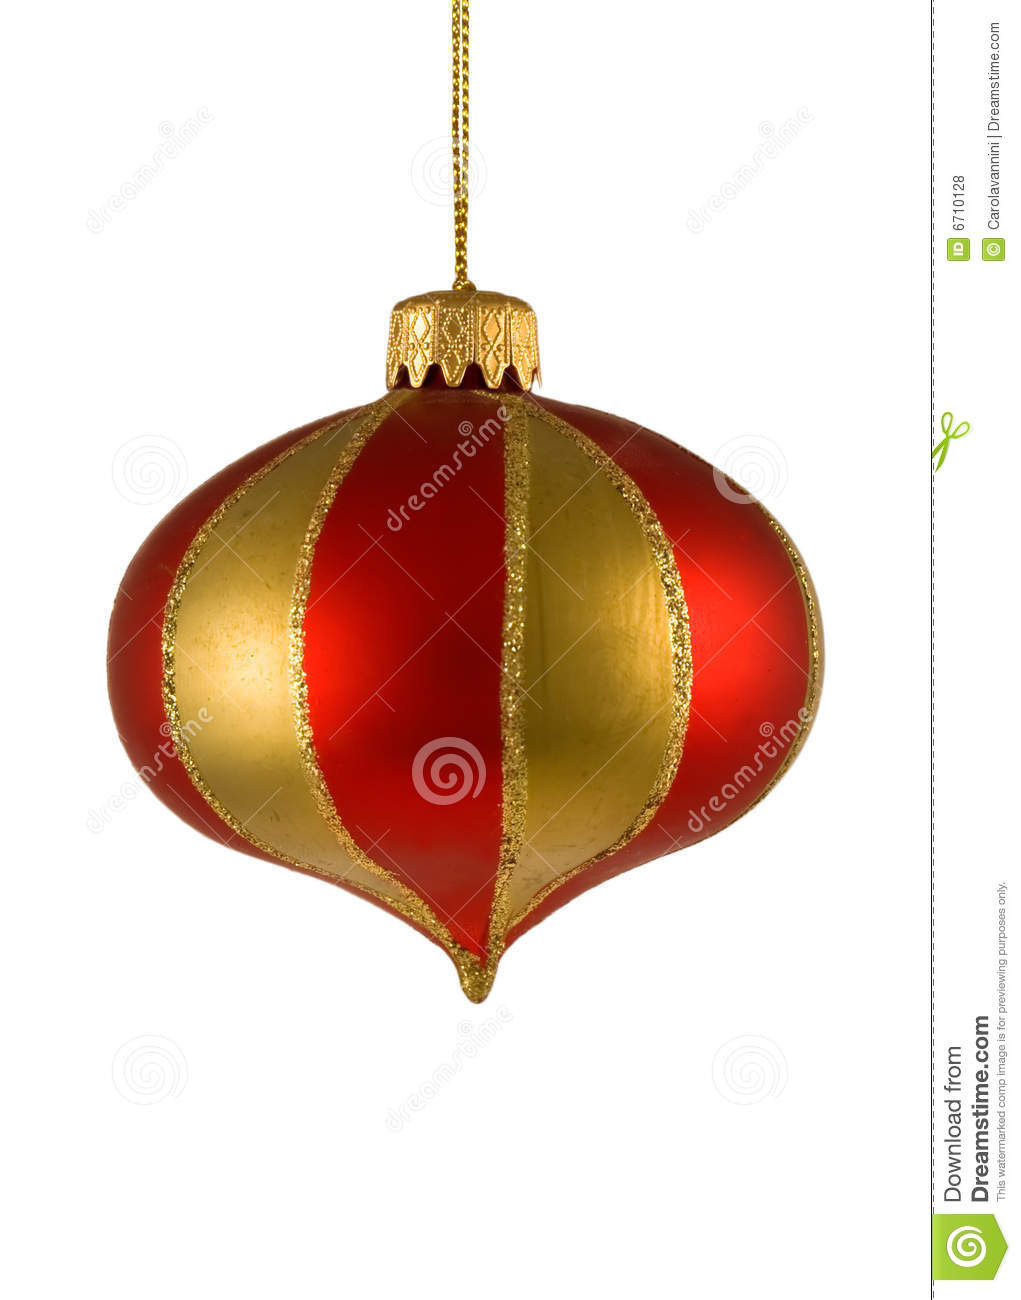 Unique Elf Christmas ornaments Invitation Template Christmas Tree Balls Of Wonderful 50 Pictures Christmas Tree Balls